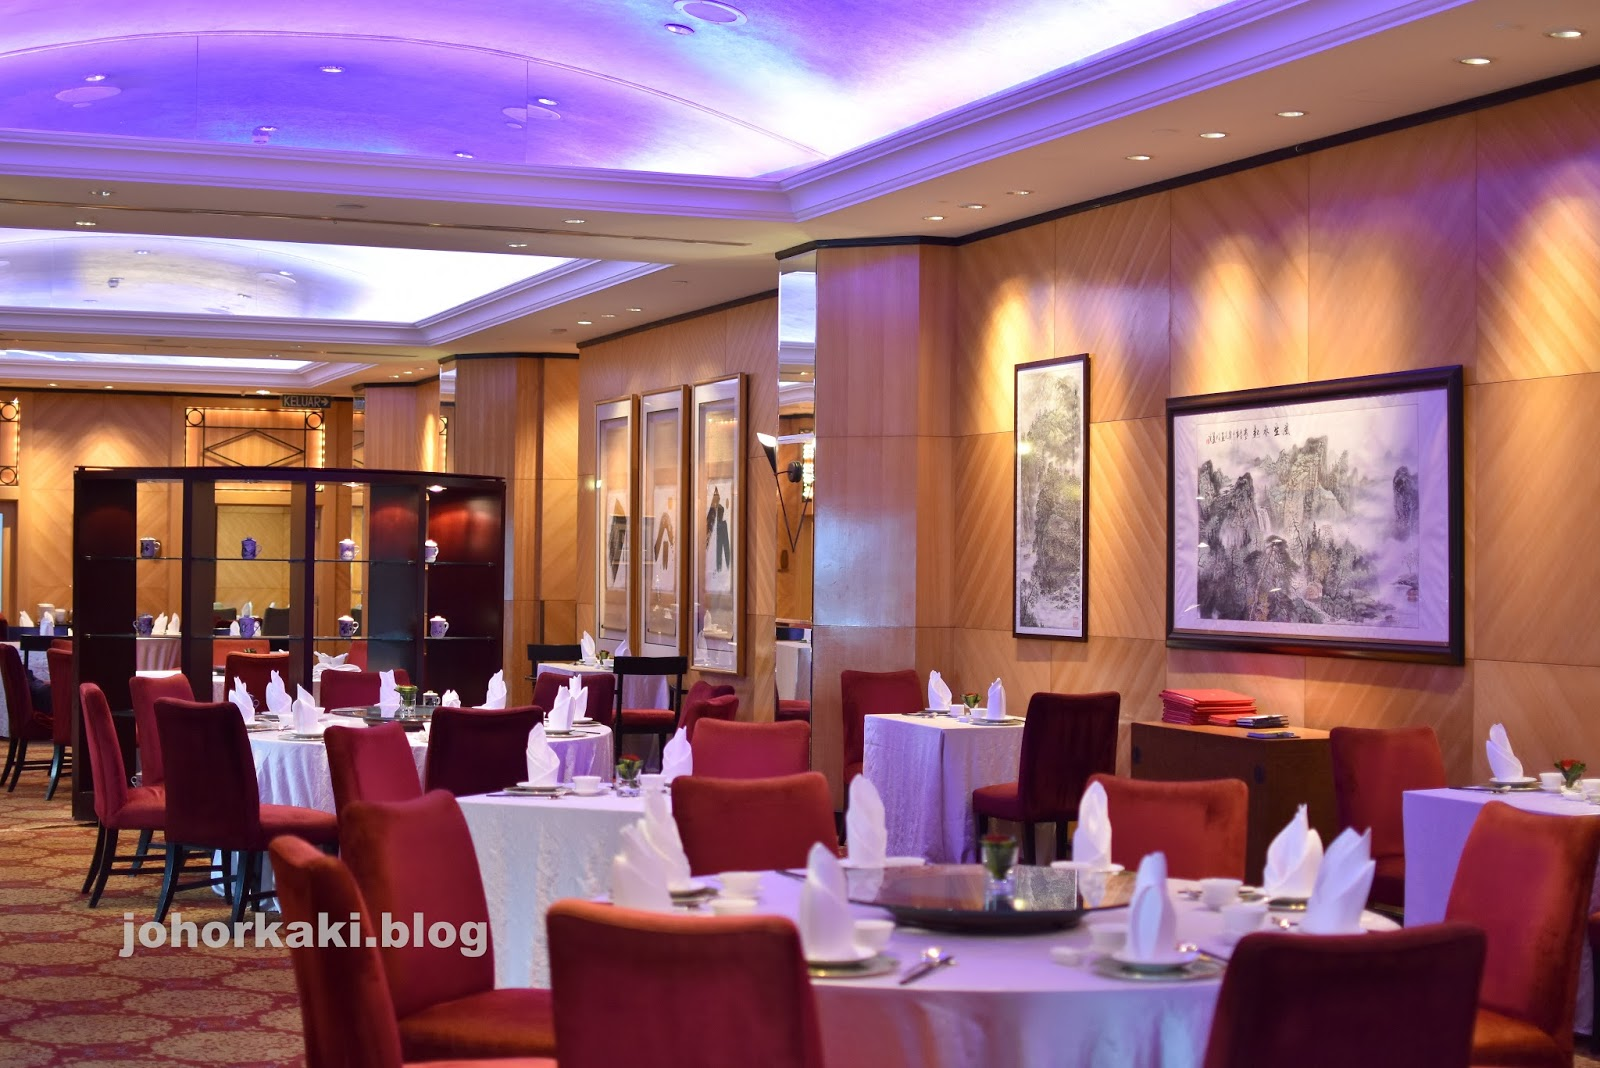 Chinese Fine Dining In Kuala Lumpur At Celestial Court Restaurant Sheraton Imperial Hotel Jk1529